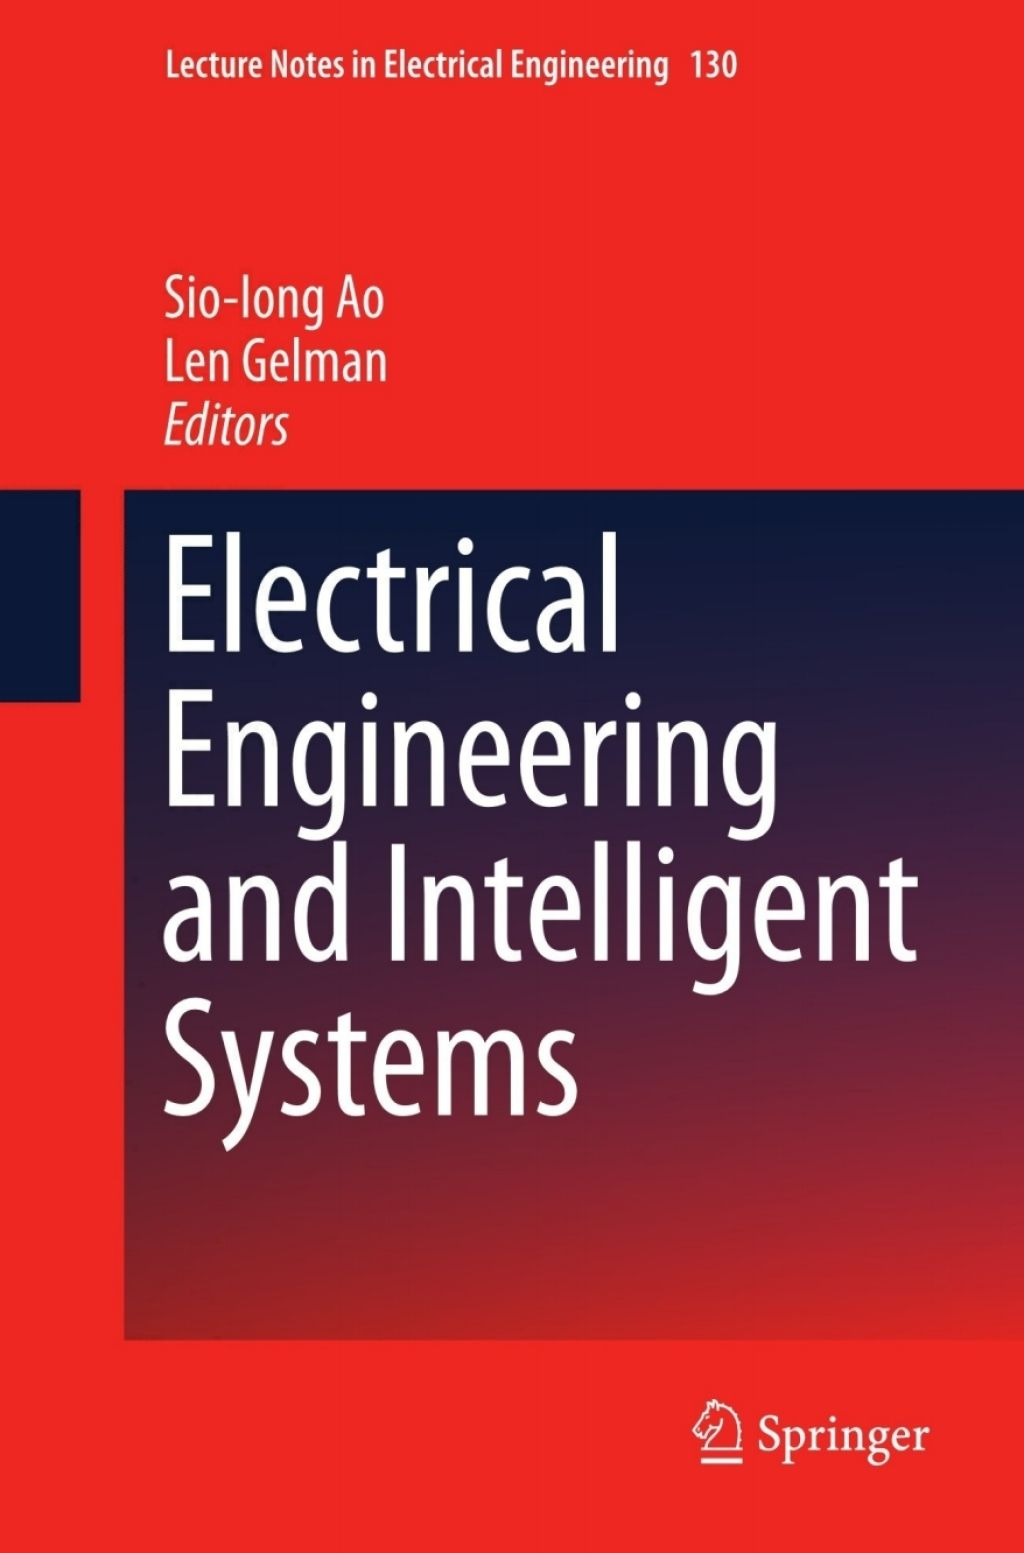 Electrical Engineering and Intelligent Systems (eBook